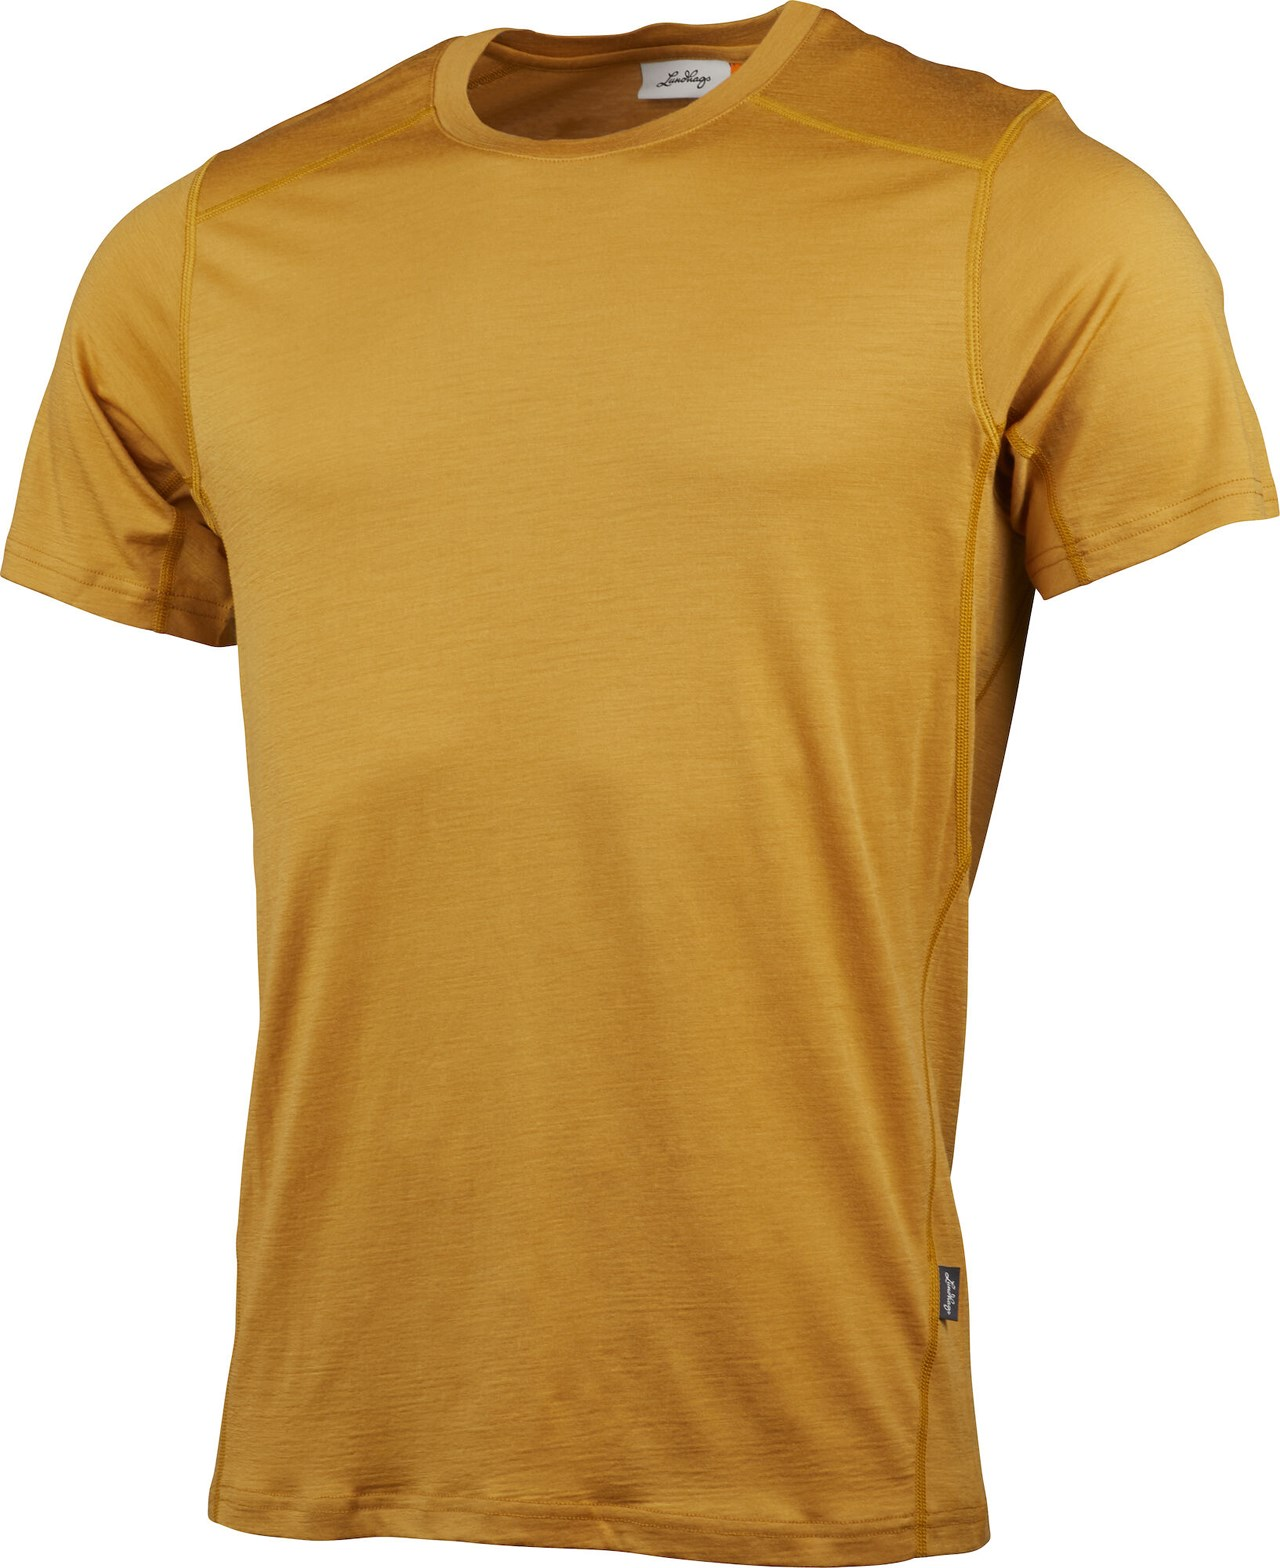 "Lundhags ""Gimmer Merino Lt Ms Tee"" - gold"